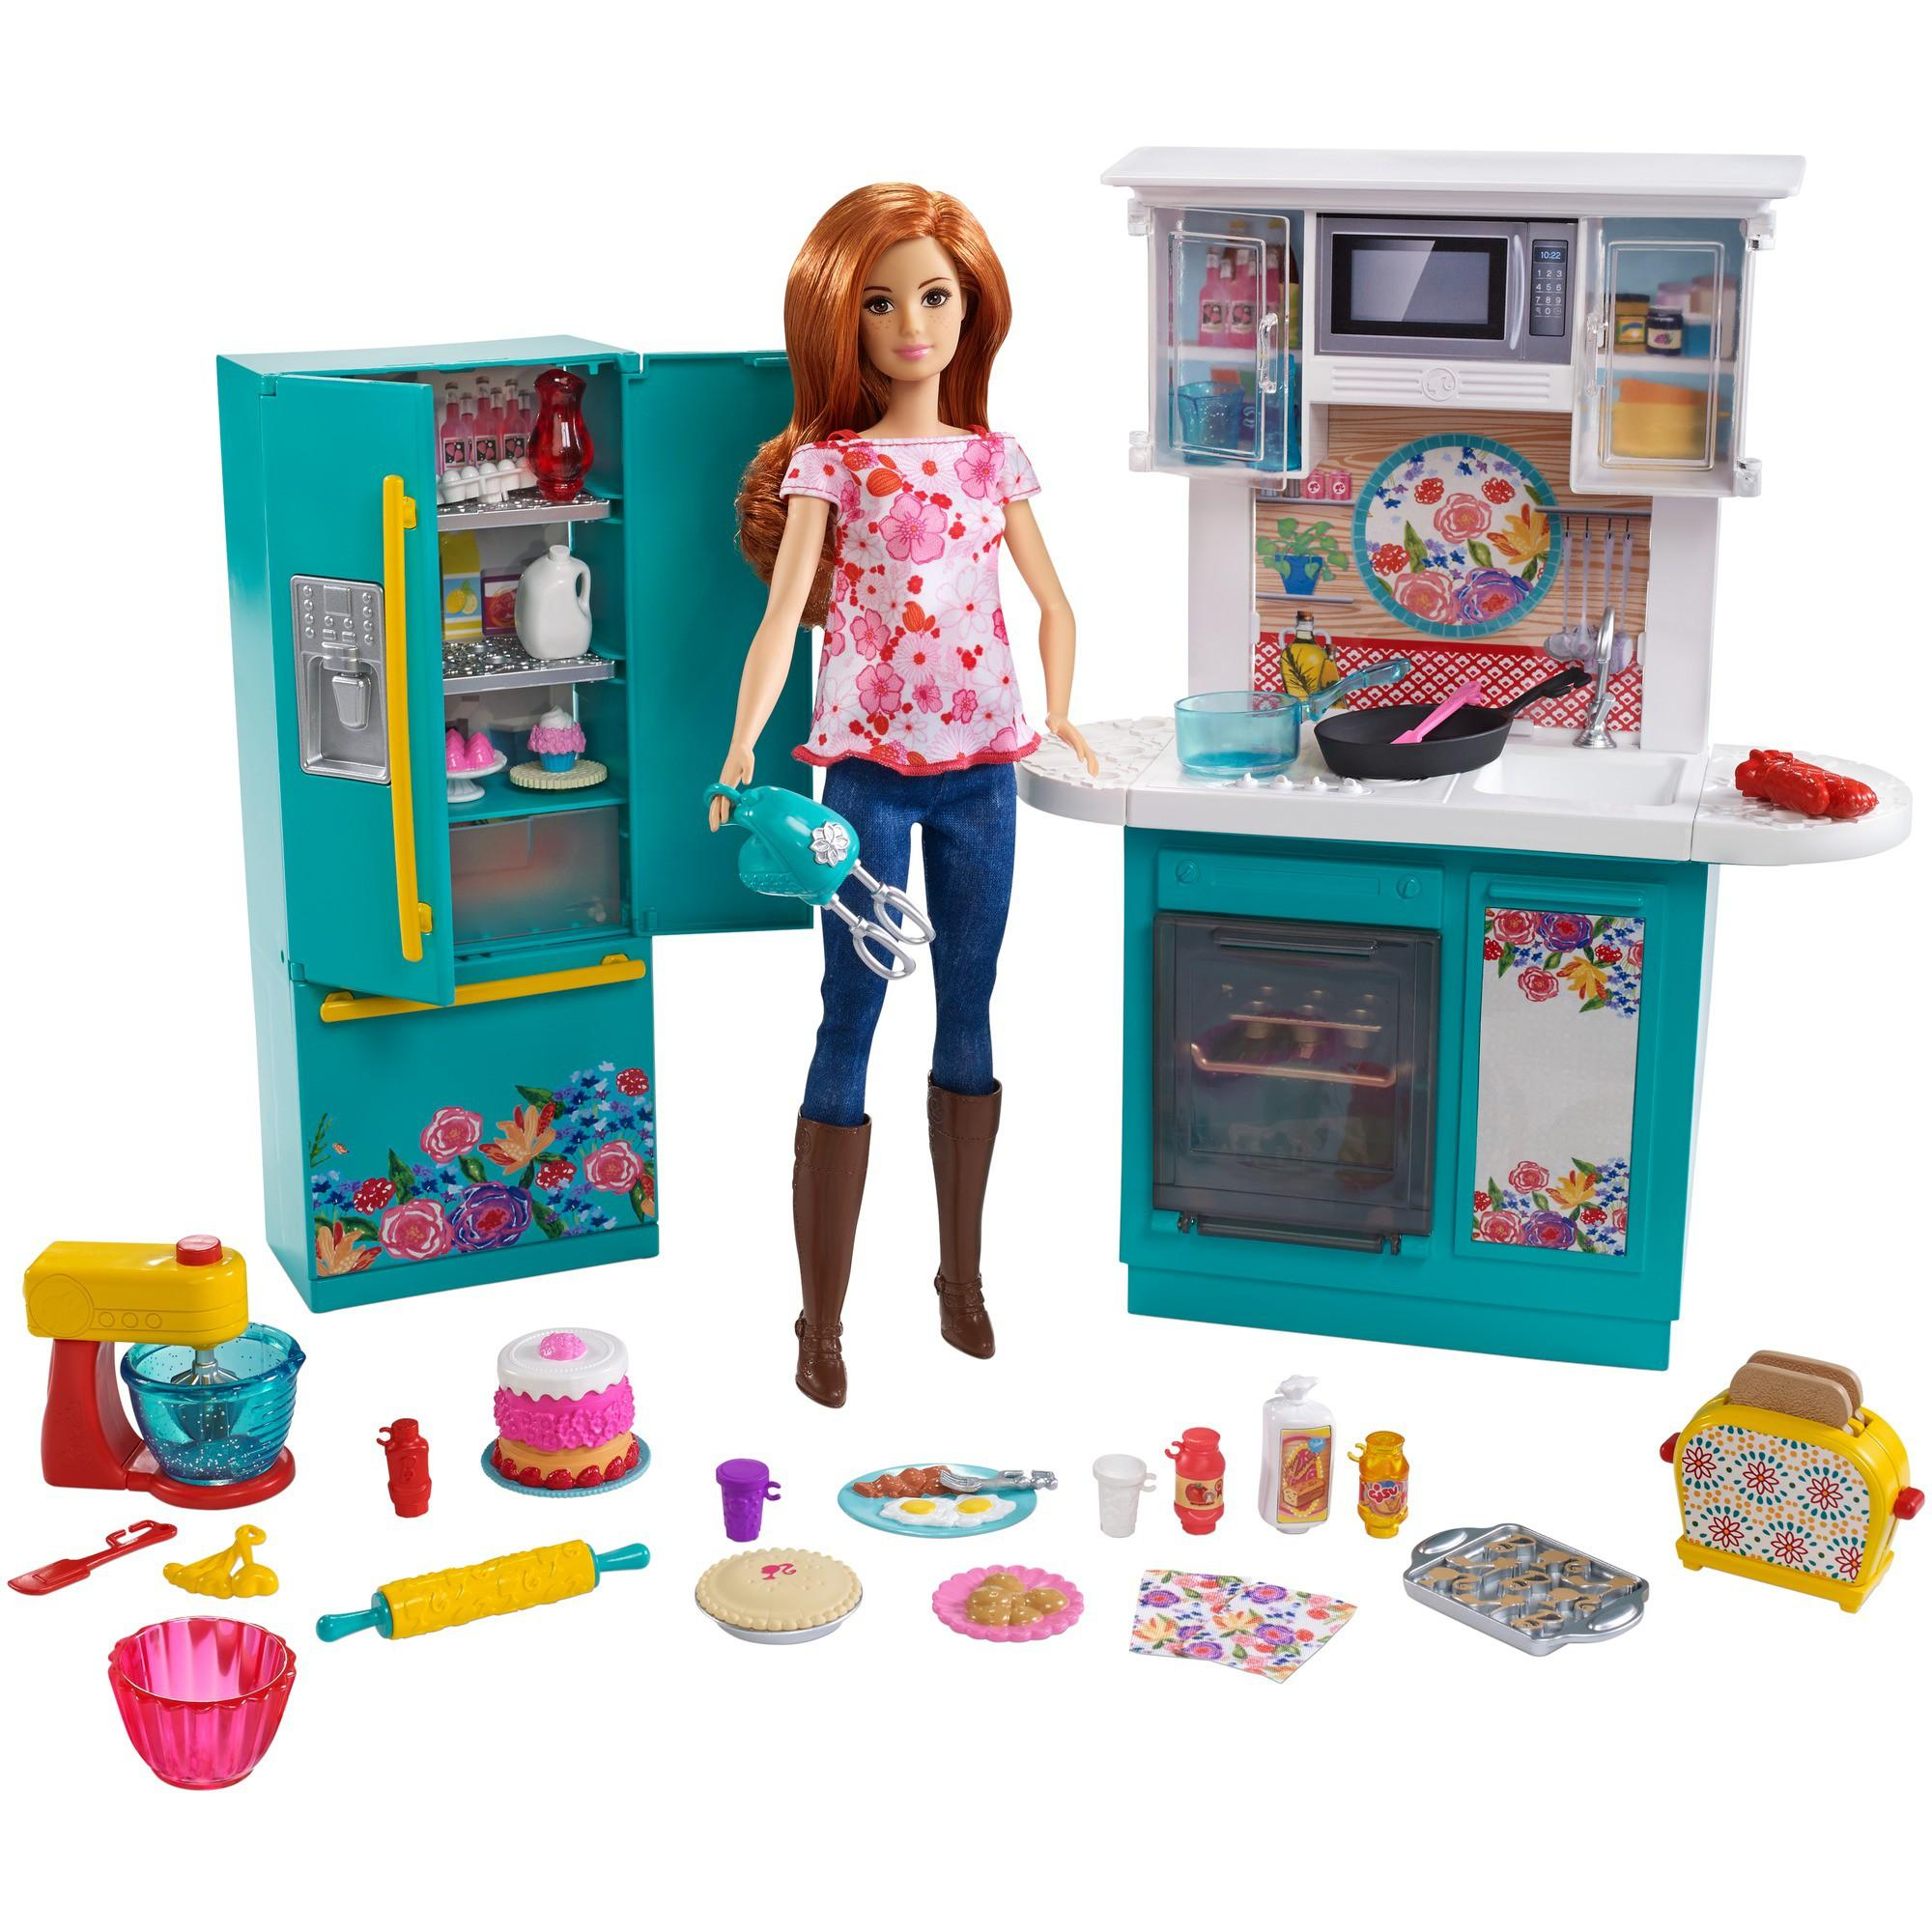 Barbie Pioneer Woman Ree Drummond Kitchen Playset with Cooking Chef Doll by Barbie